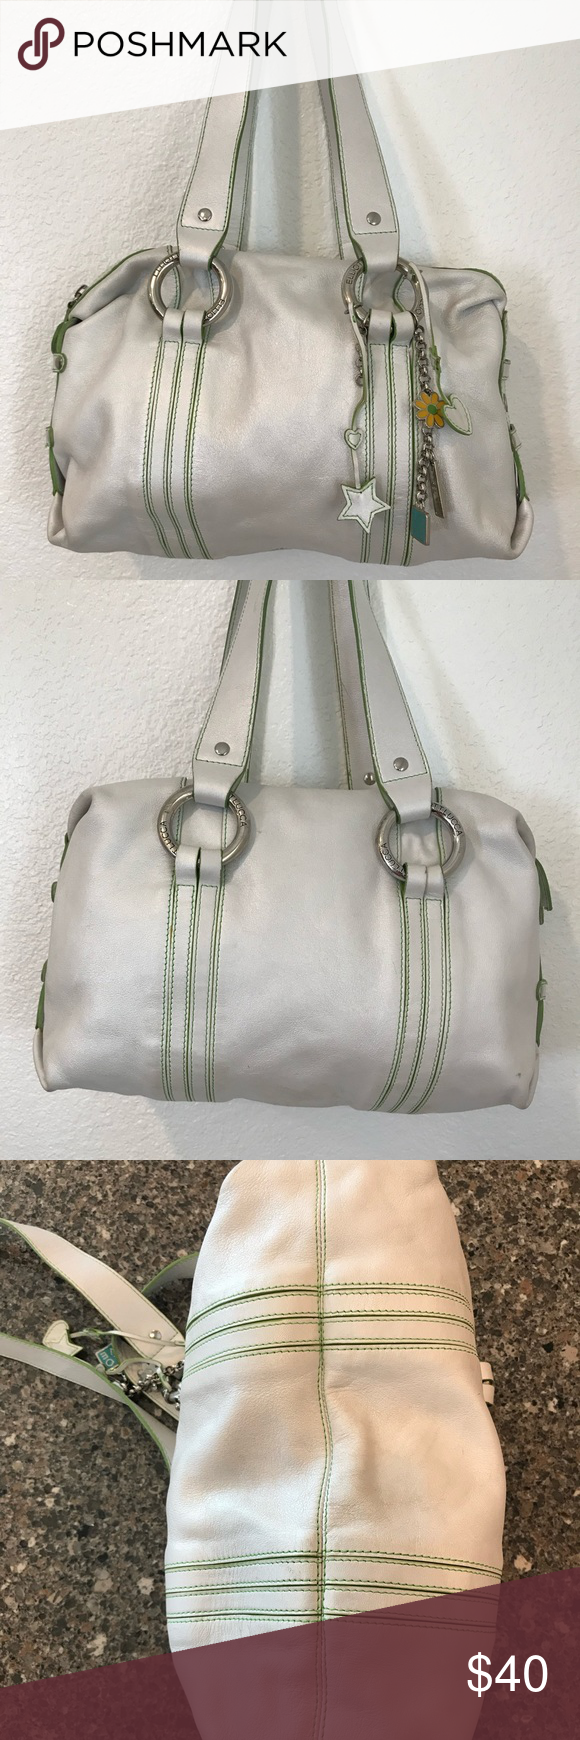 Elliott Lucca Leather Satchel Very cool and unusually colored silvery white leather bag.  Lime green edging.  Zipper top and interior zip pocket and slip pockets. Minimal wear.  Some spots on interior lining.  Size approximately 12w x 3d x 8h inches. Very soft and comfortable to carry. Elliott Lucca Bags Satchels #zippertop